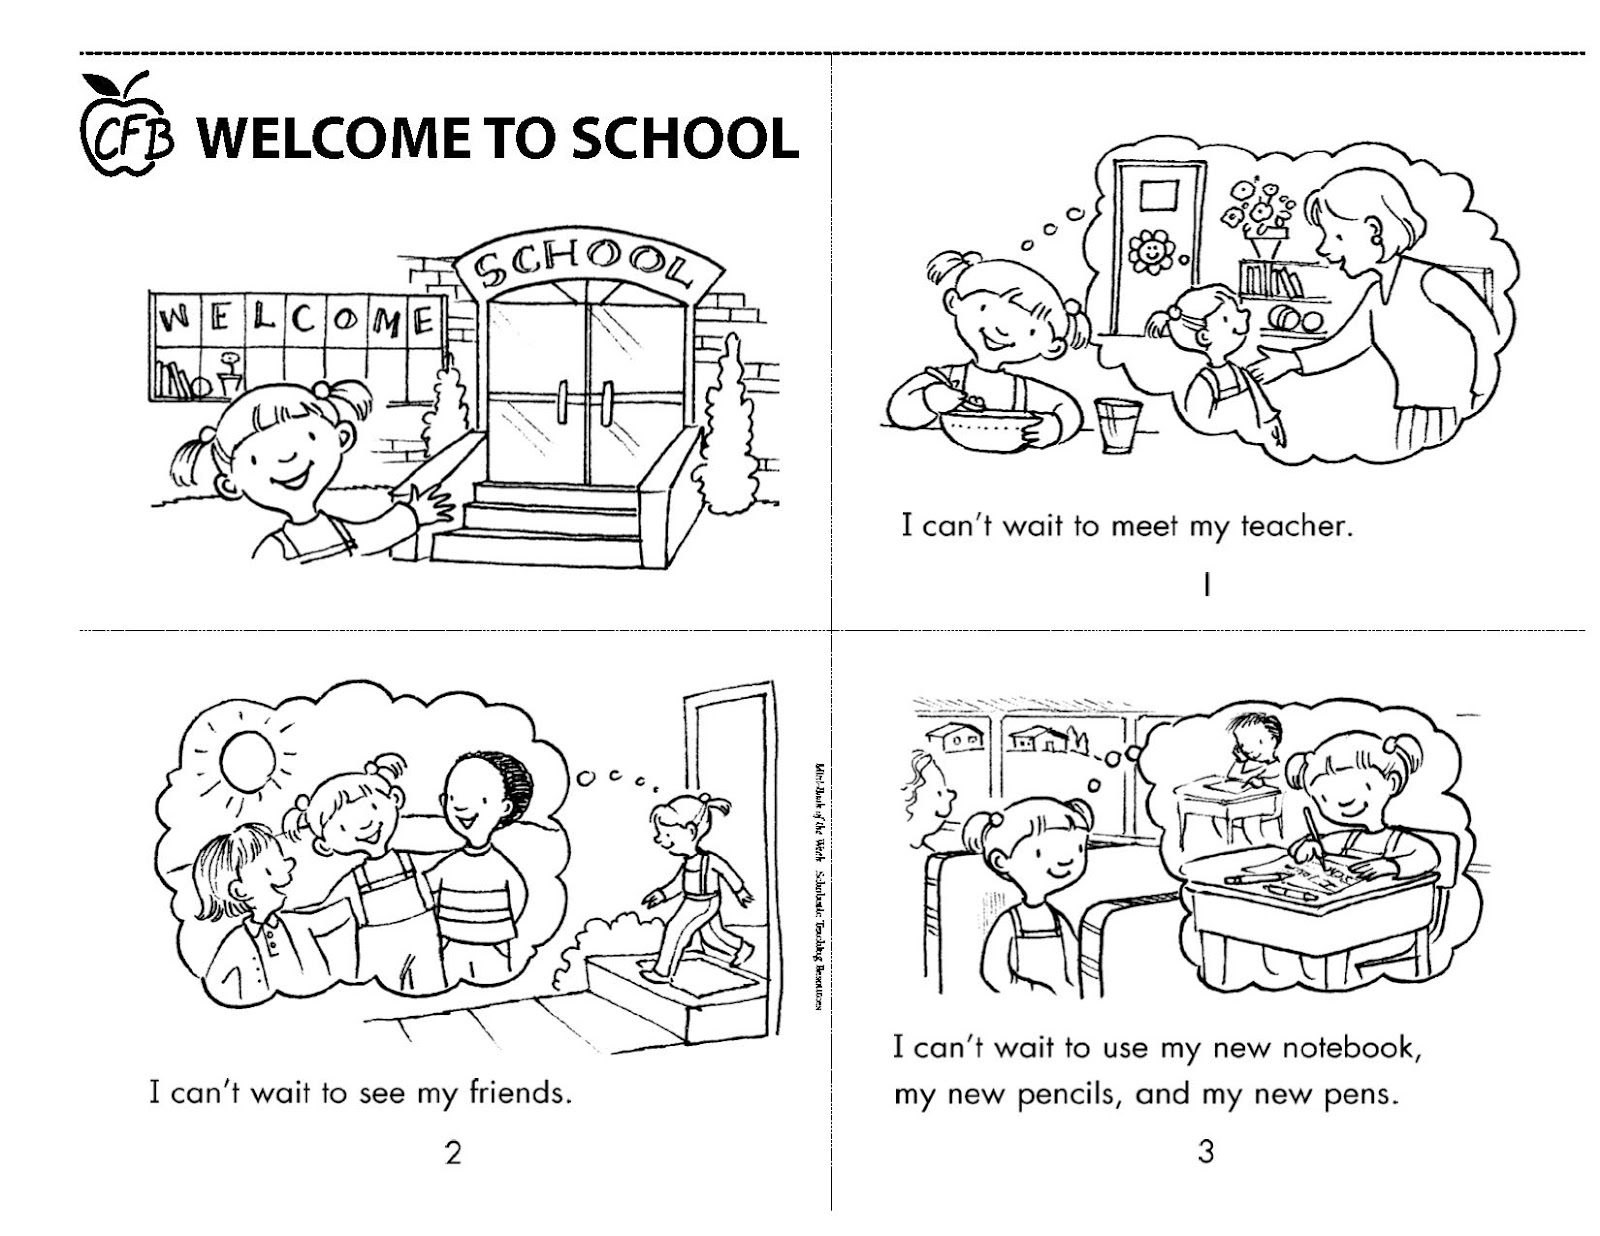 Future C Fb Parenting Young Children Welcome To School Printable